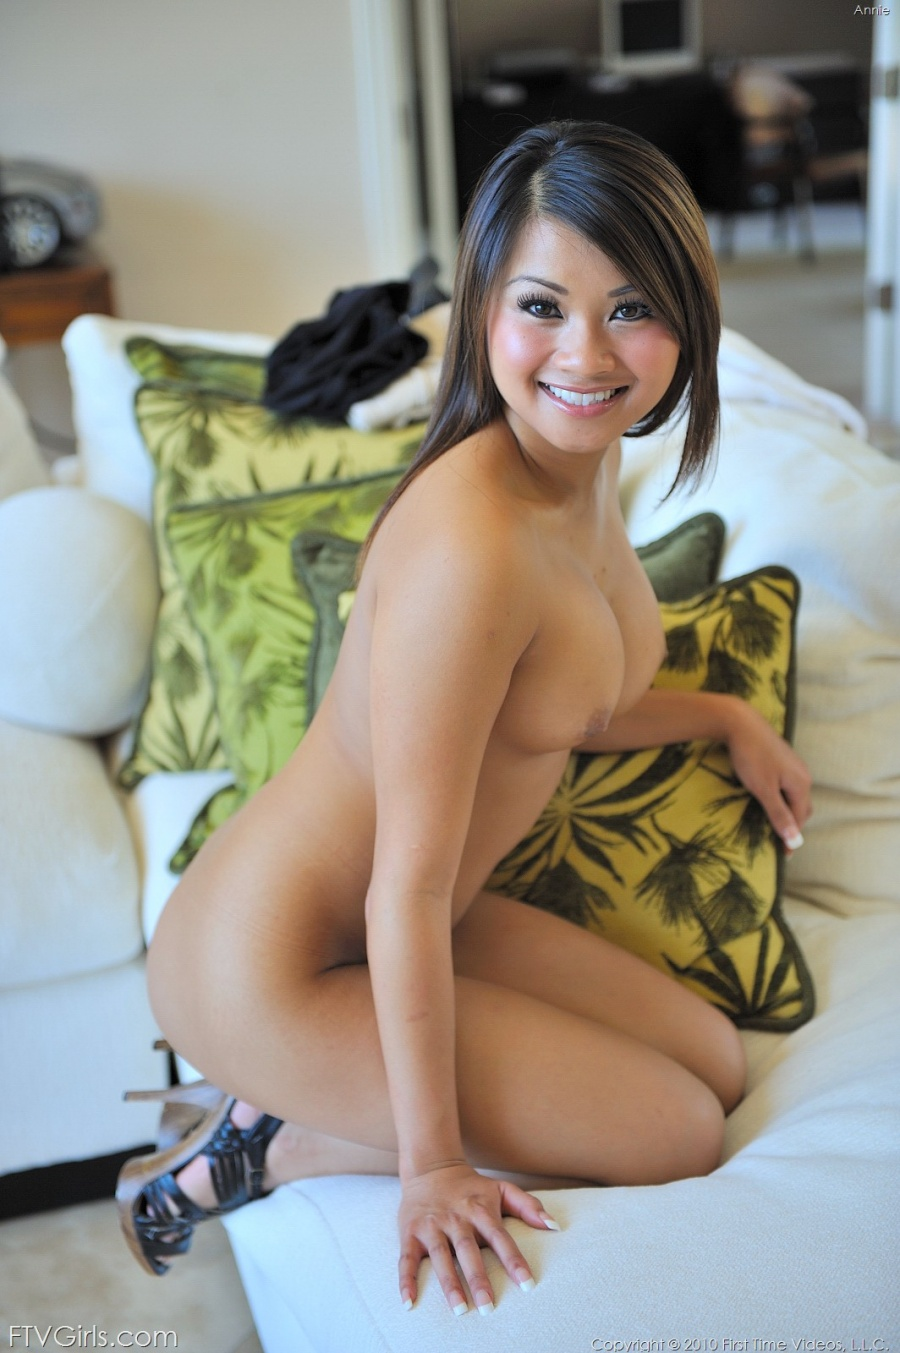 asian girls ftv